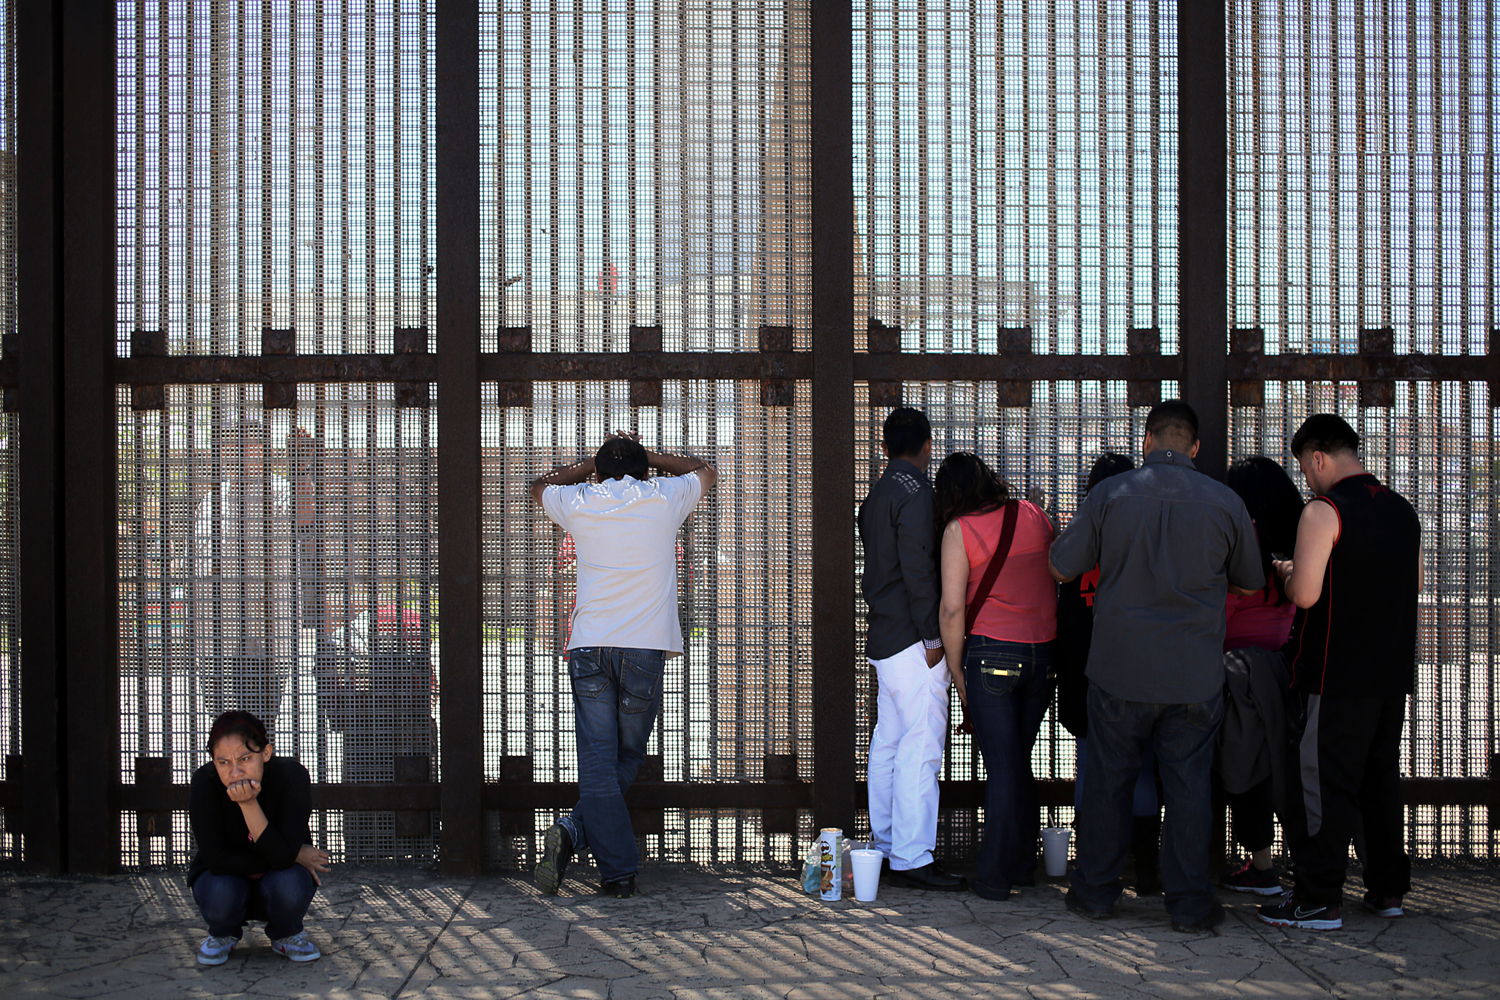 Apr. 6, 2014. People visit with loved ones through the U.S.-Mexico border fence at Friendship Park in San Ysidro, CA. Many deported families and friends visit each other, mainly on weekends, at the park after being separated by immigration officials.